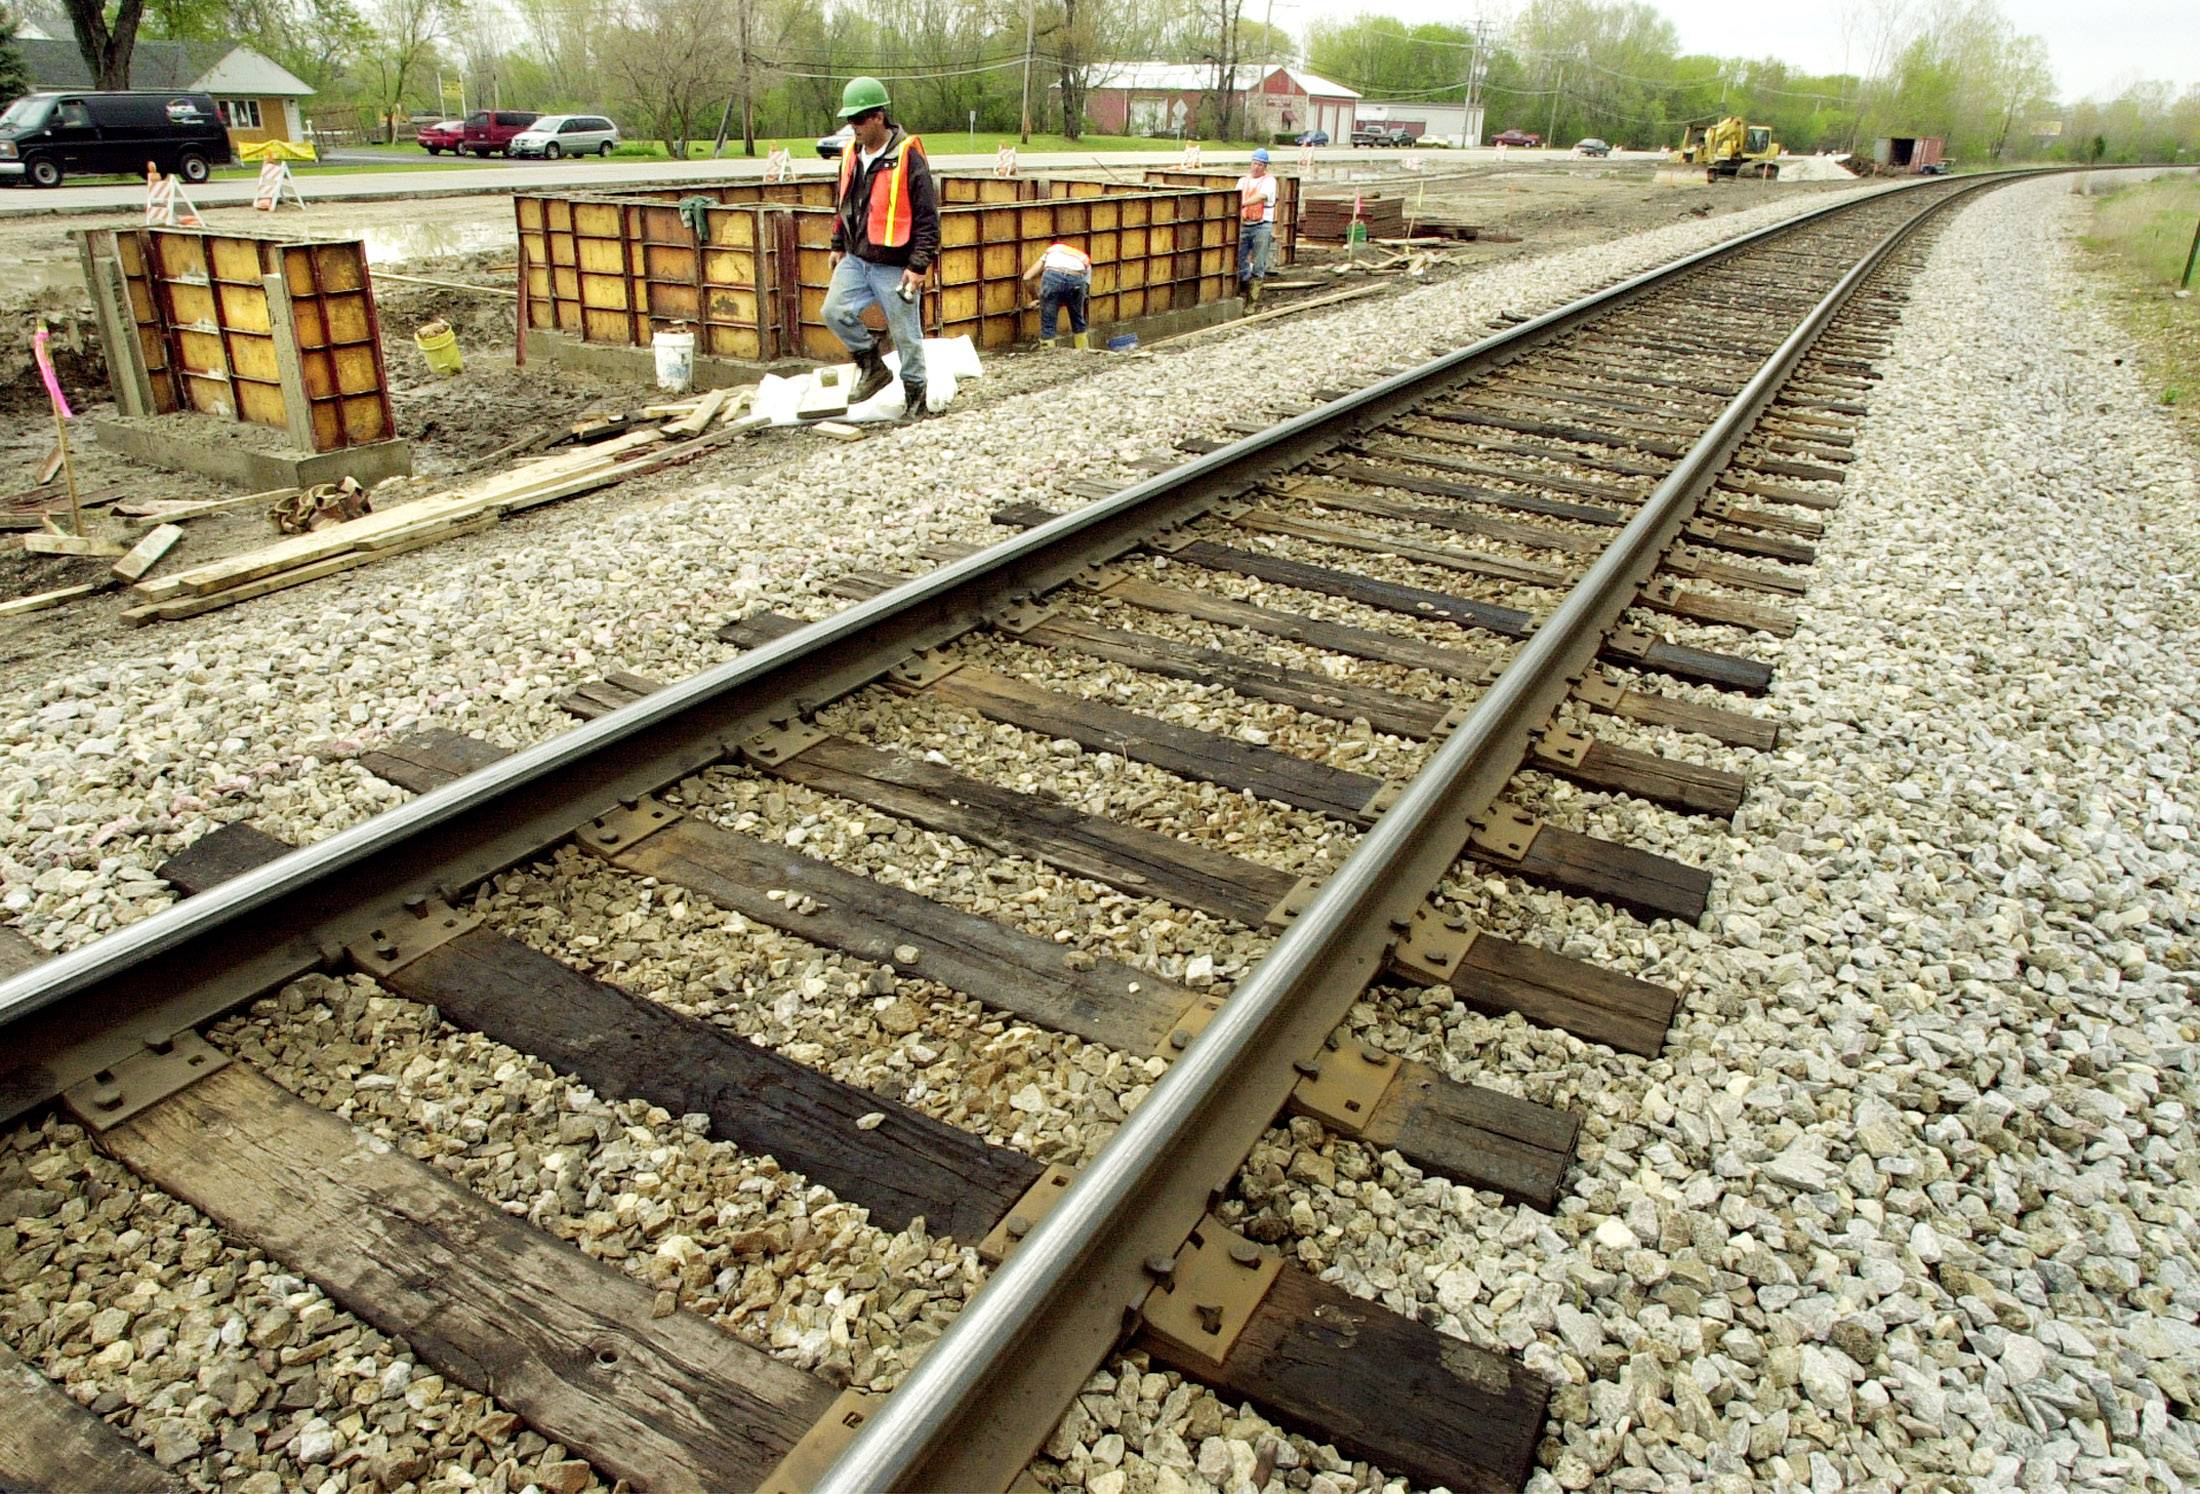 Metra is replacing rail ties on its Milwaukee District North Line this April between Libertyville and Fox Lake. Schedule changes will affect midday and weekend riders between those stations.